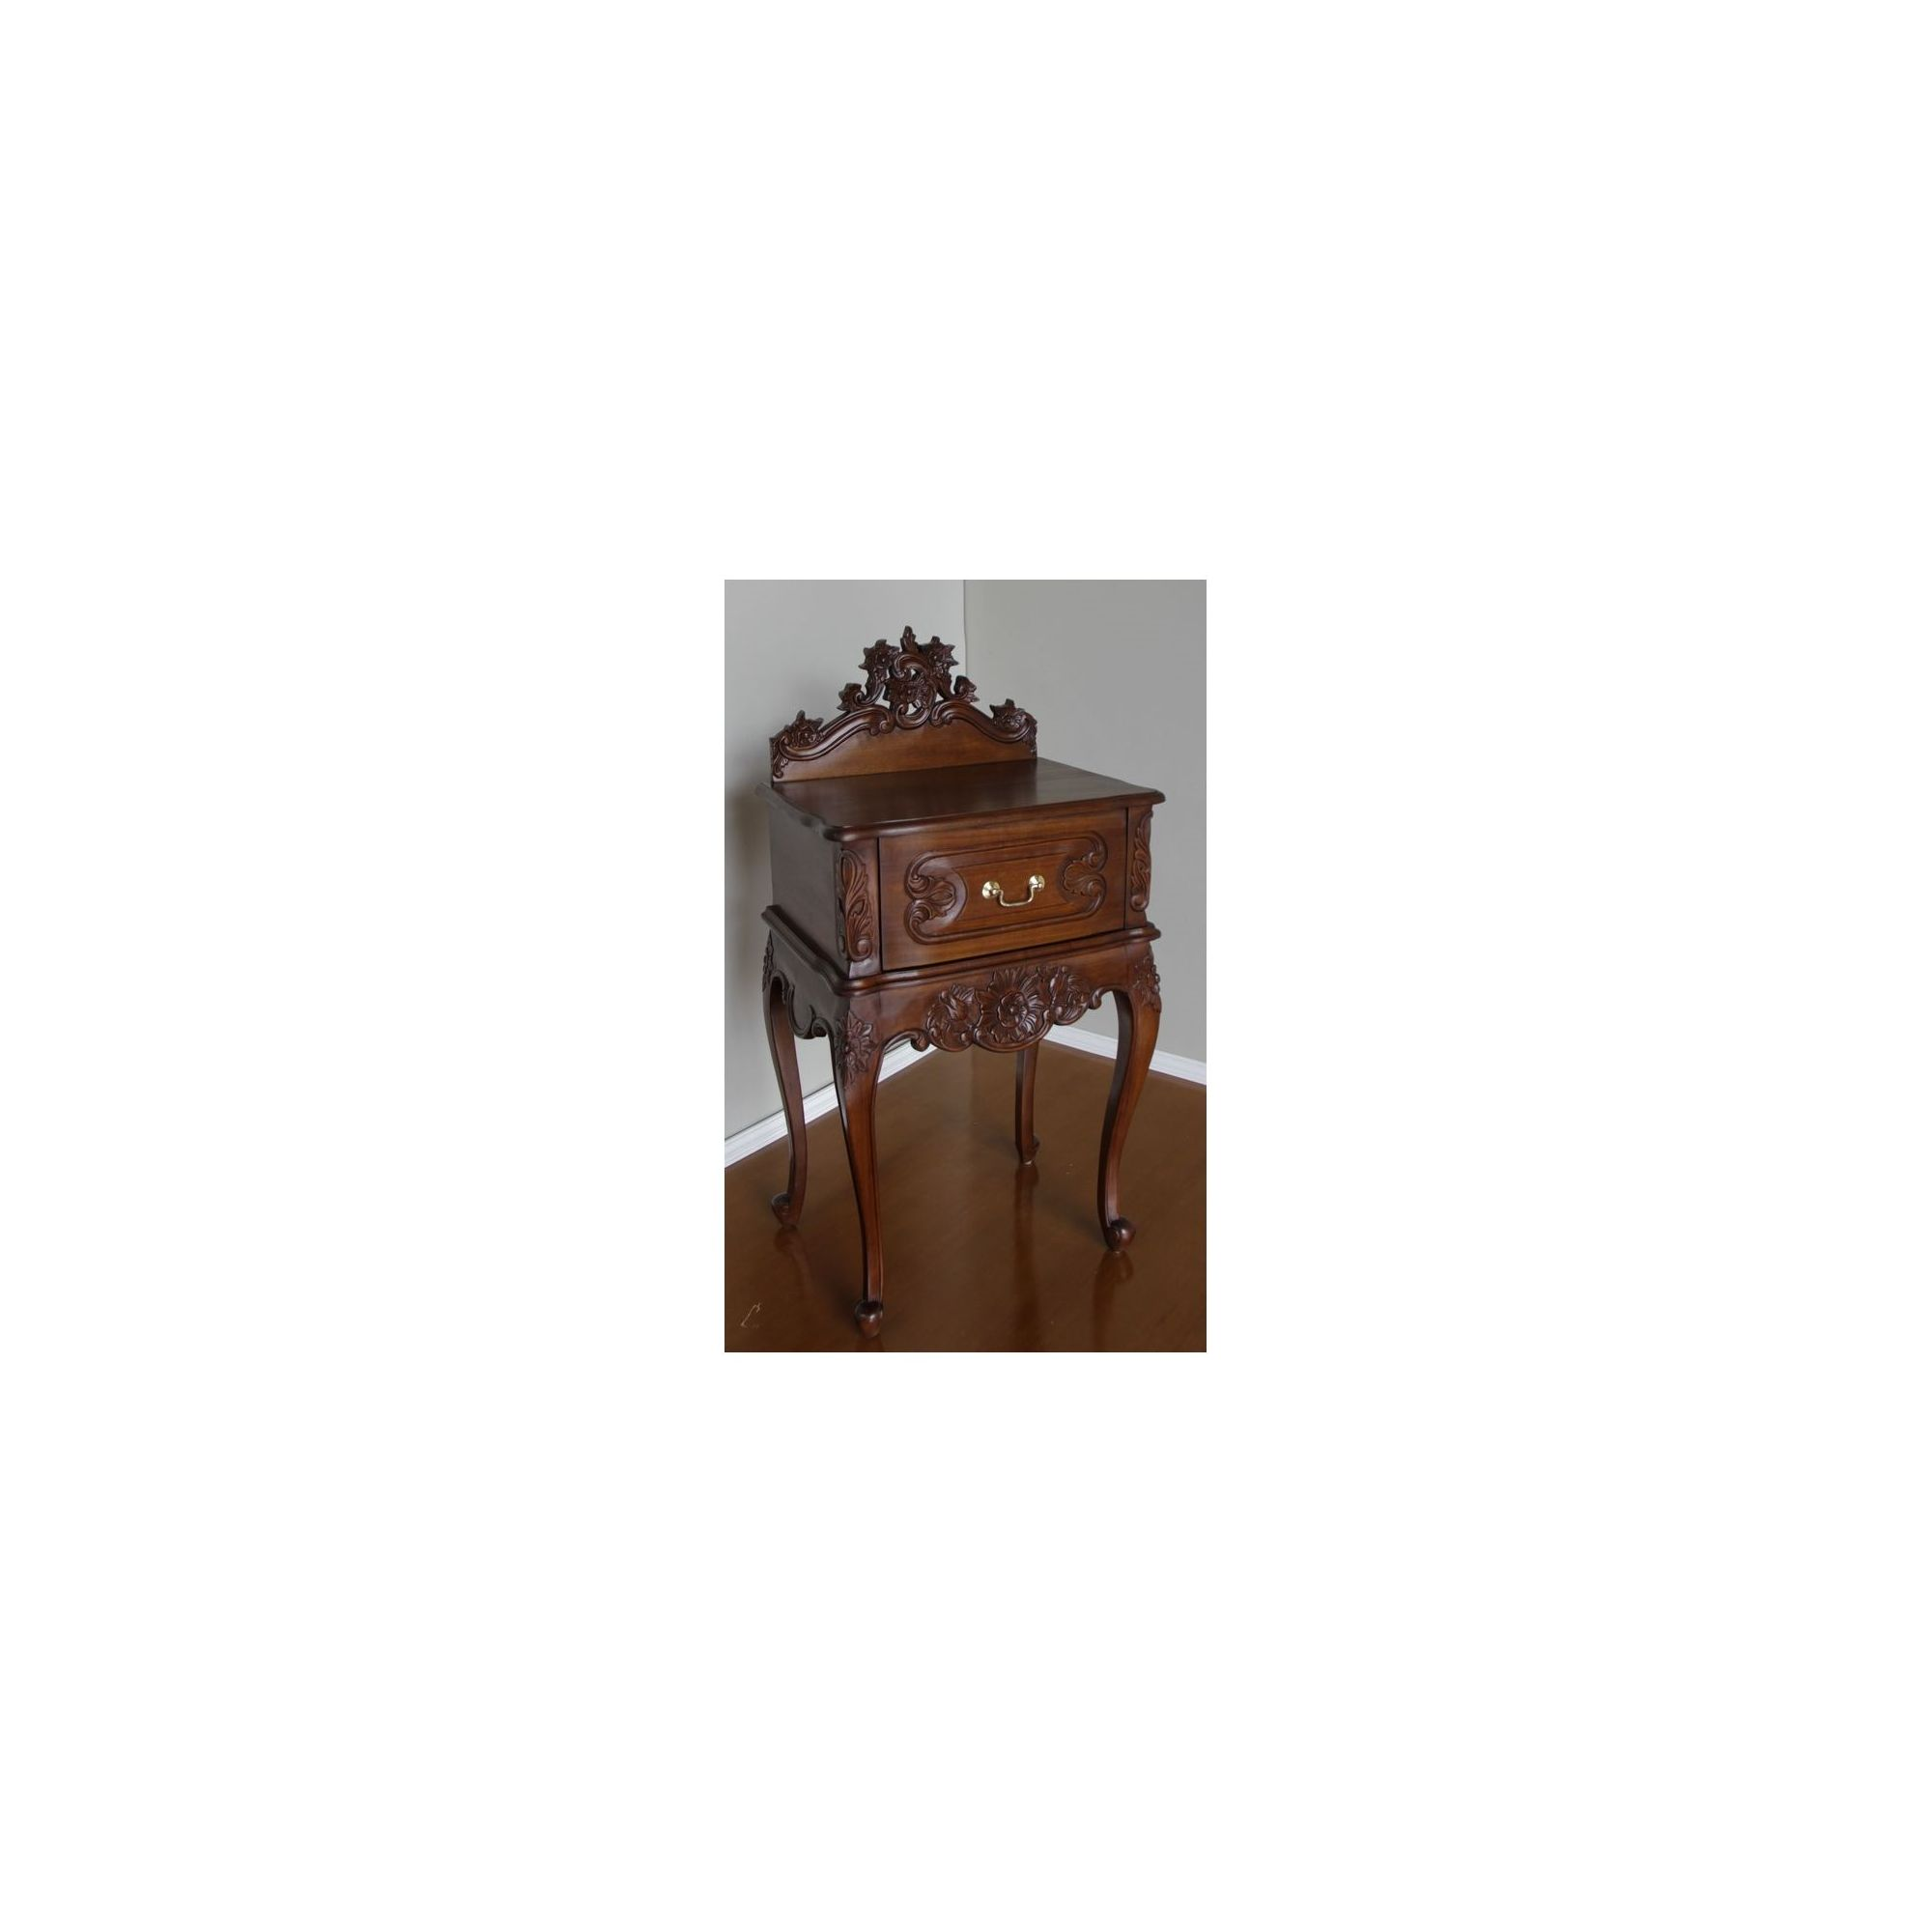 Lock stock and barrel Mahogany Rococo Bedside Table with Pediment in Mahogany - Wax at Tescos Direct